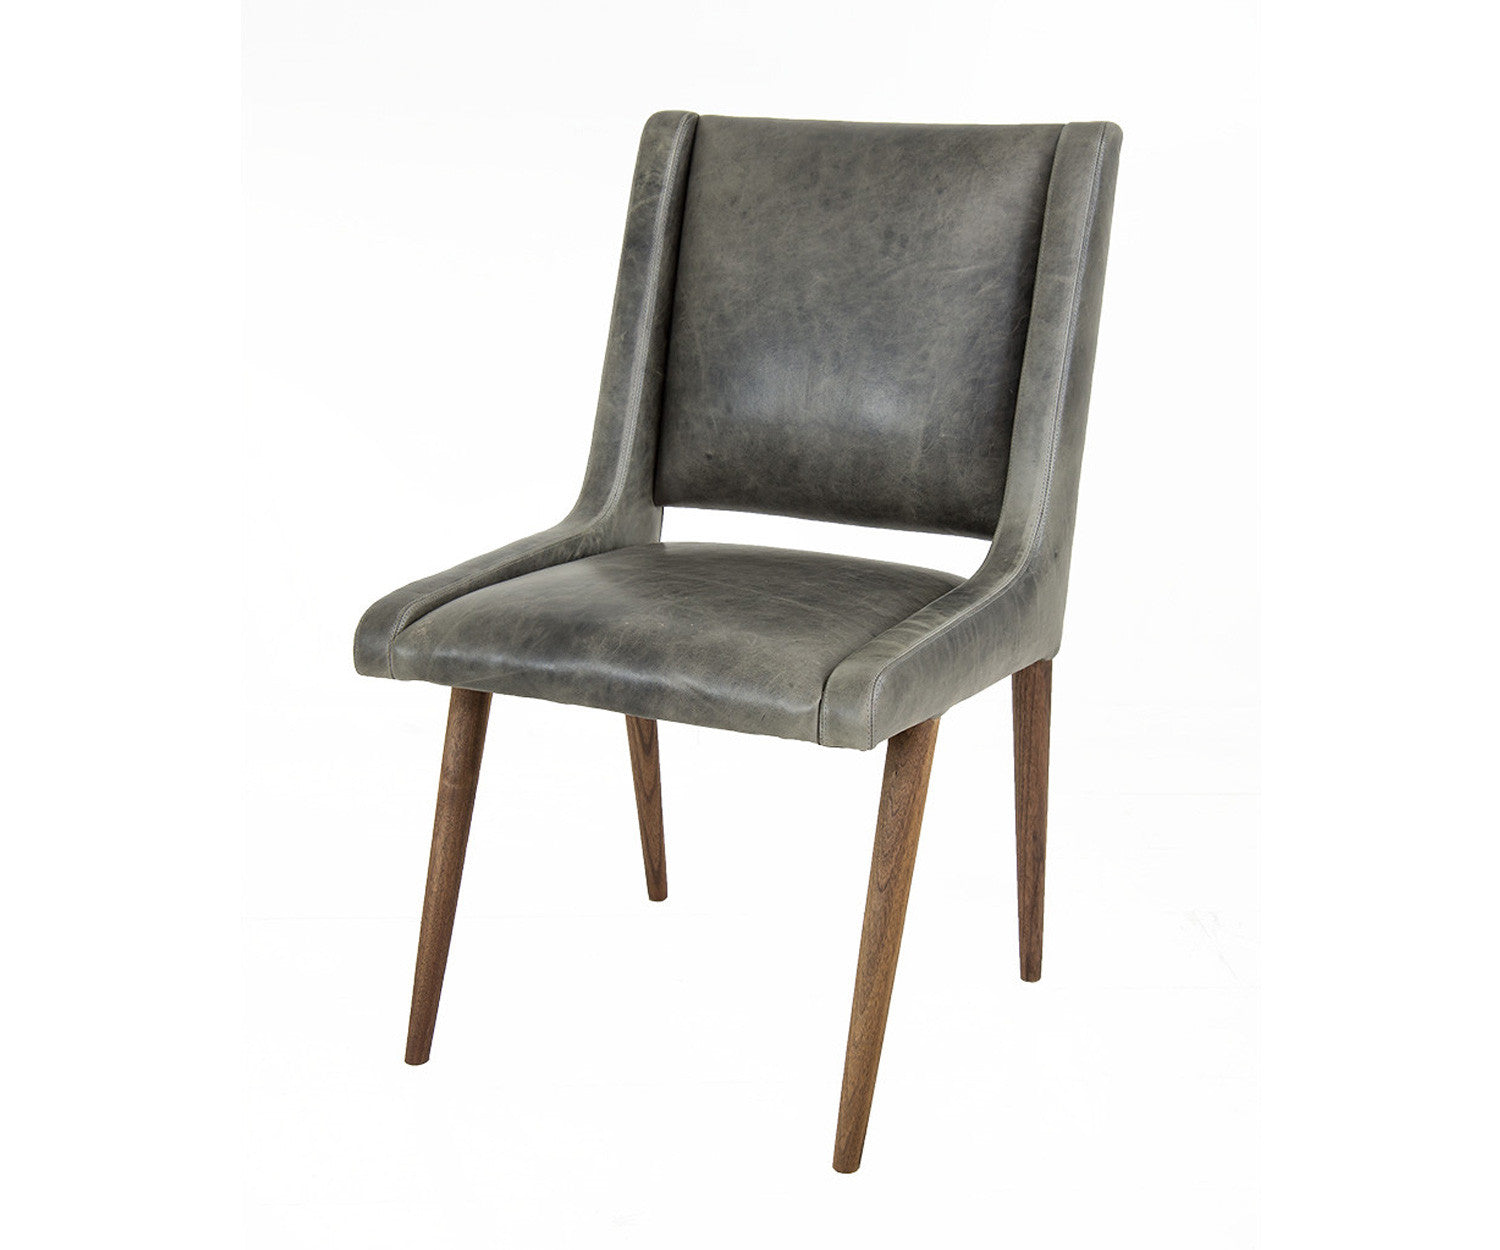 sale retailer 57509 de7c4 Mid Century Dining Chair in Distressed Grey Leather